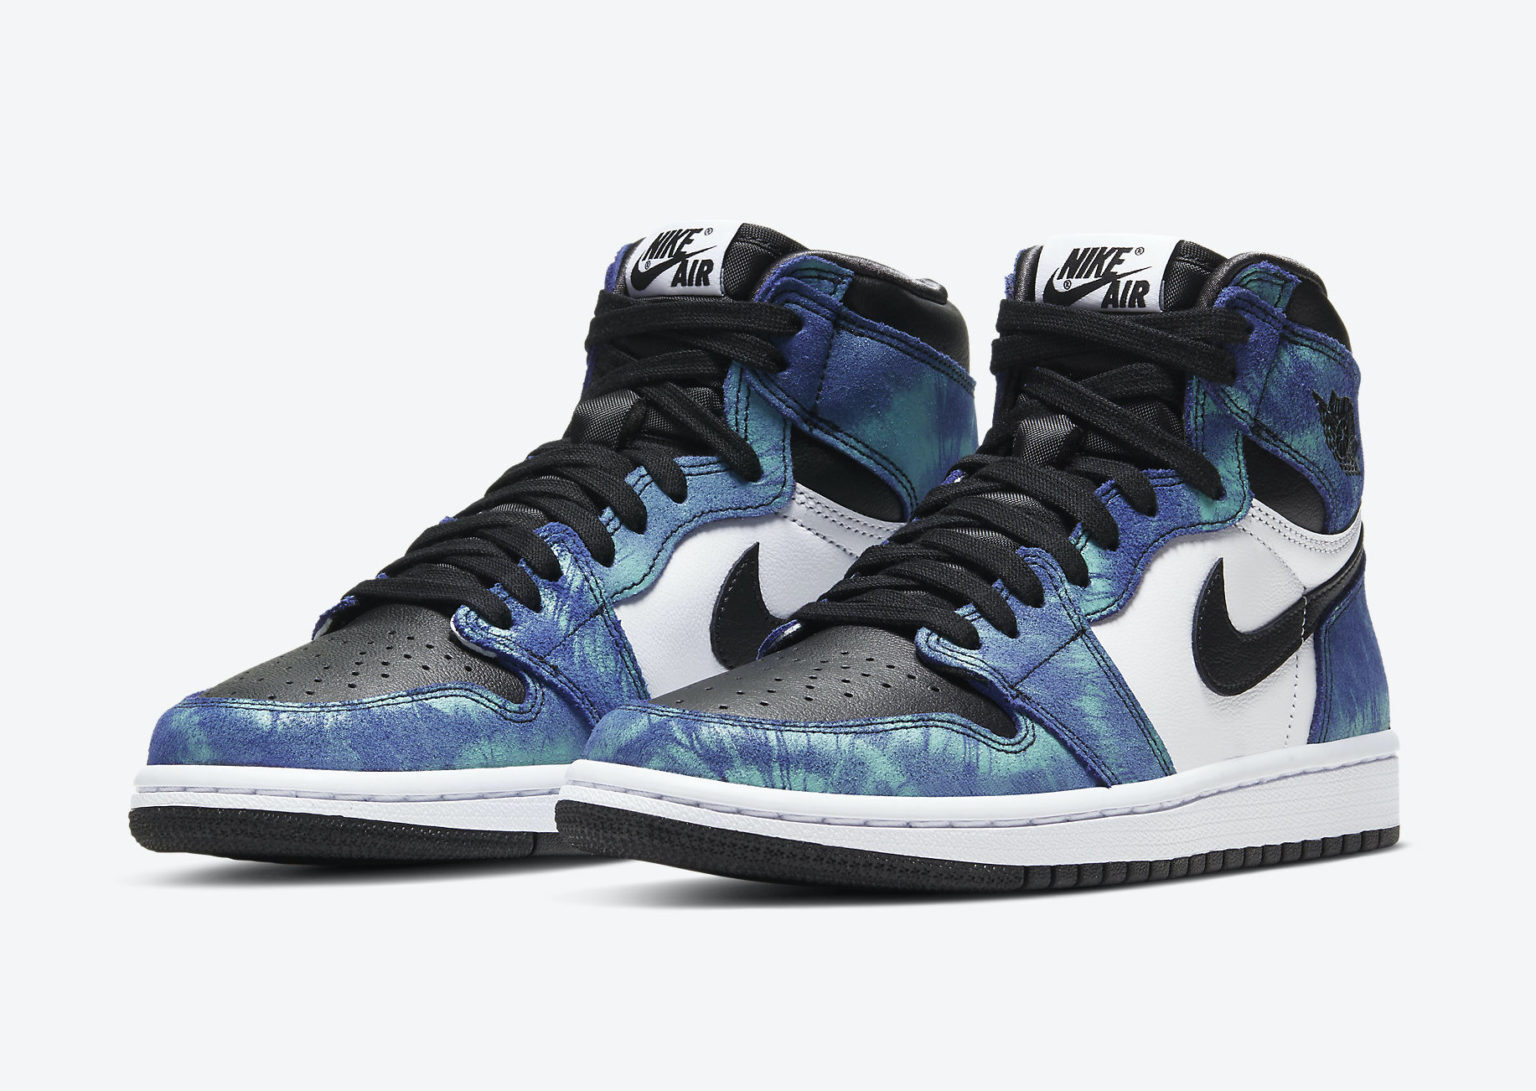 Stand out with the Air Jordan 1 High OG 'Tie-Dye'